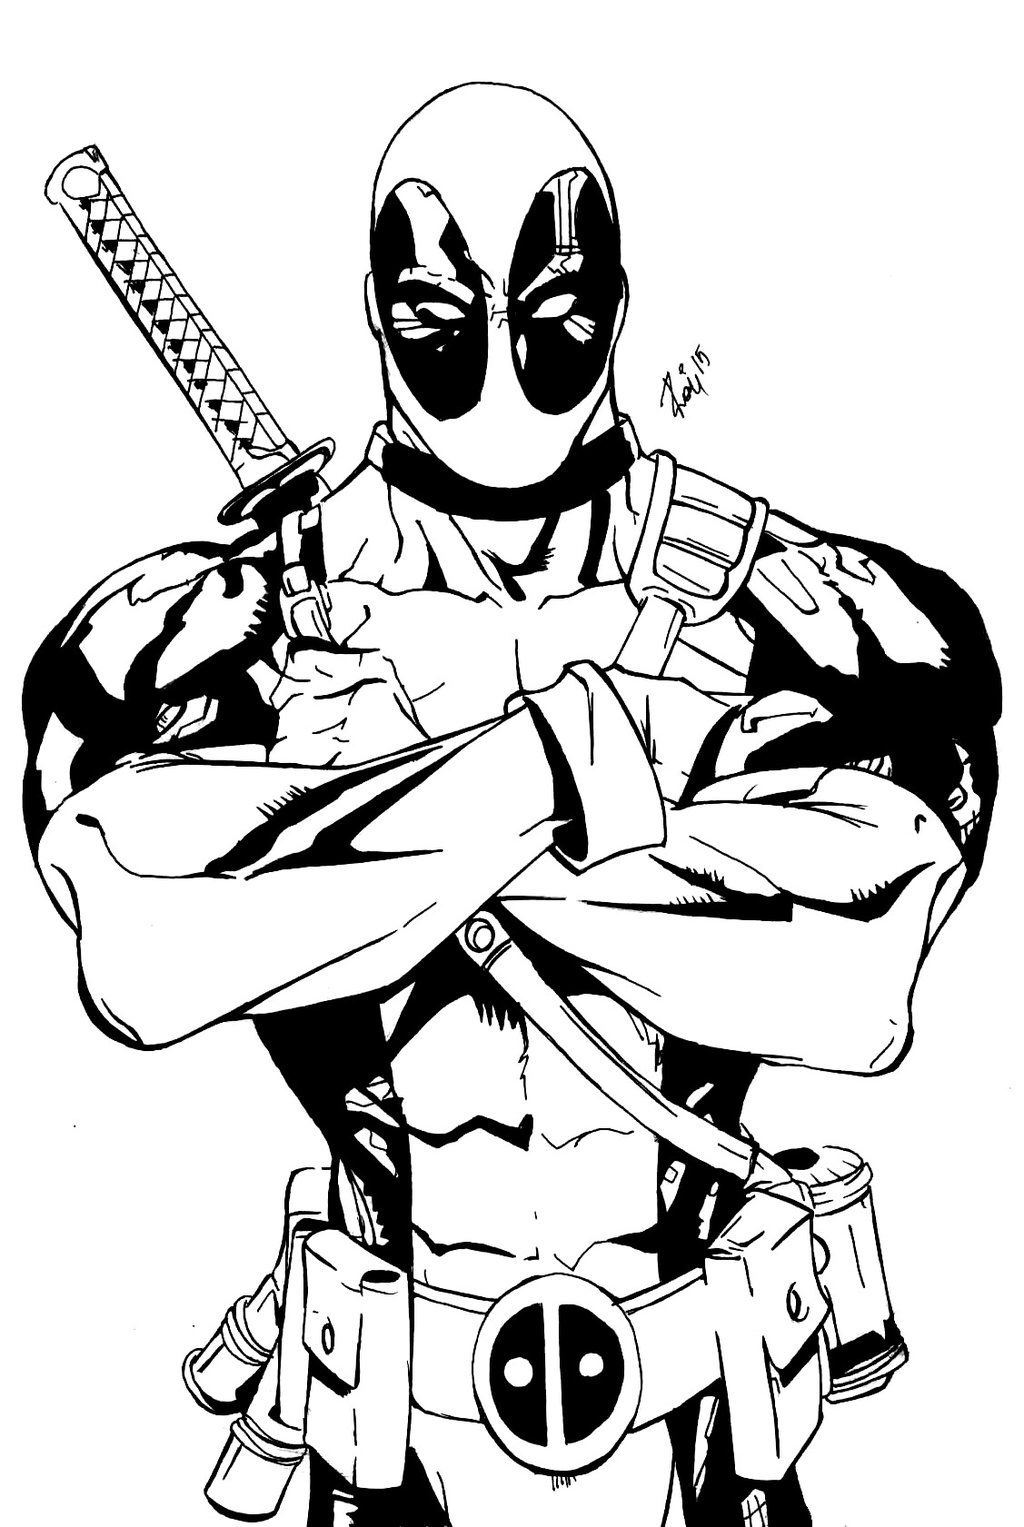 Deadpool Avengers Coloring Pages Superhero Coloring Pages Avengers Coloring